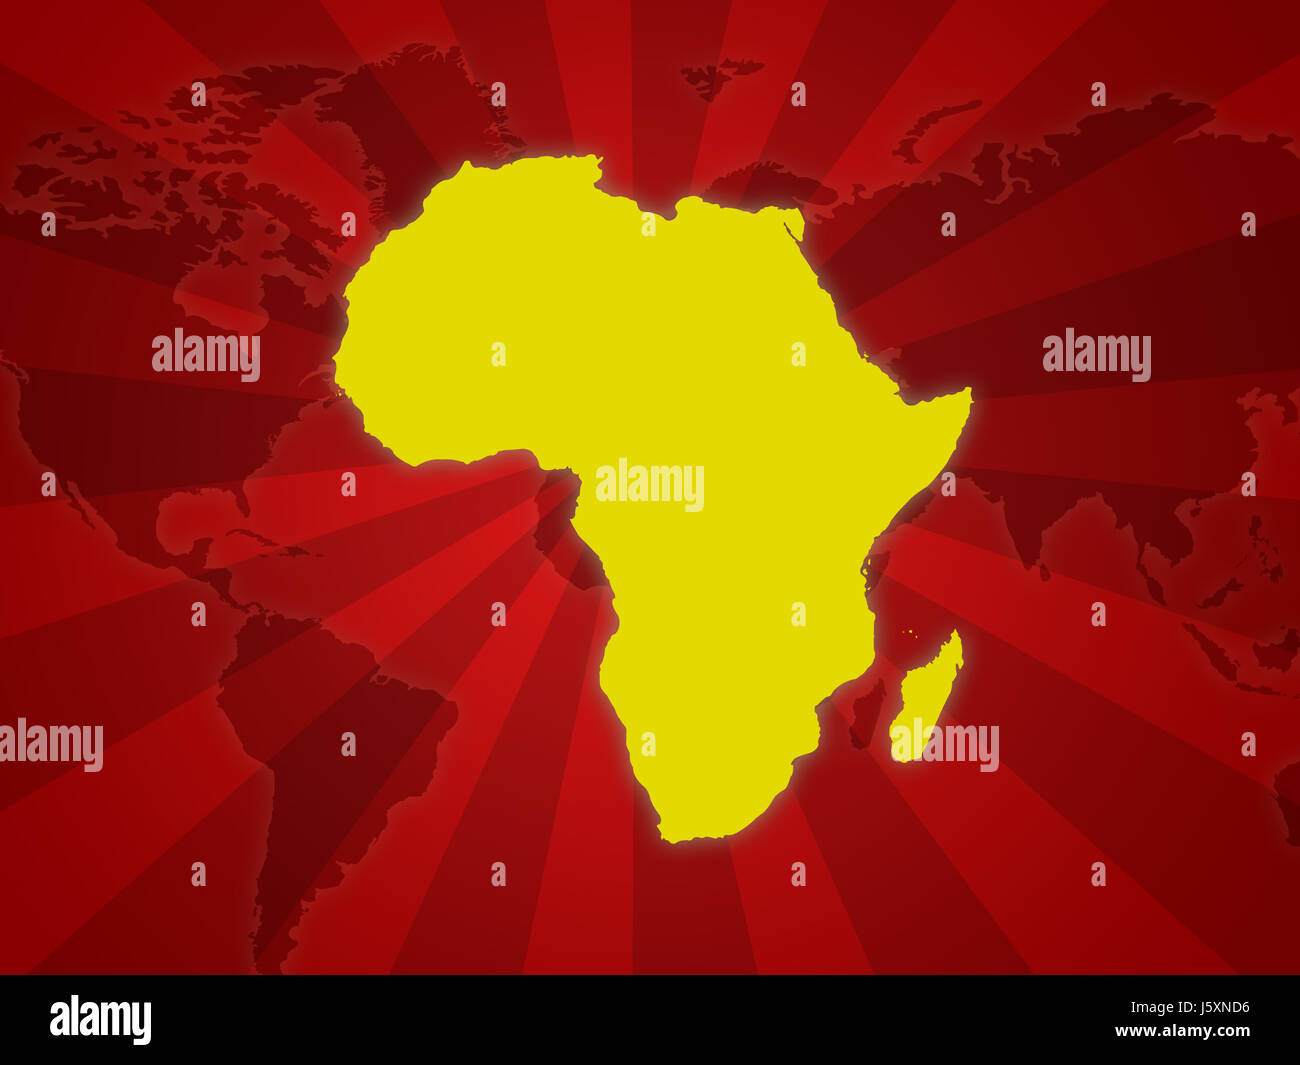 Africa europe south continent globe planet earth world geography map africa europe south continent globe planet earth world geography map atlas map gumiabroncs Image collections